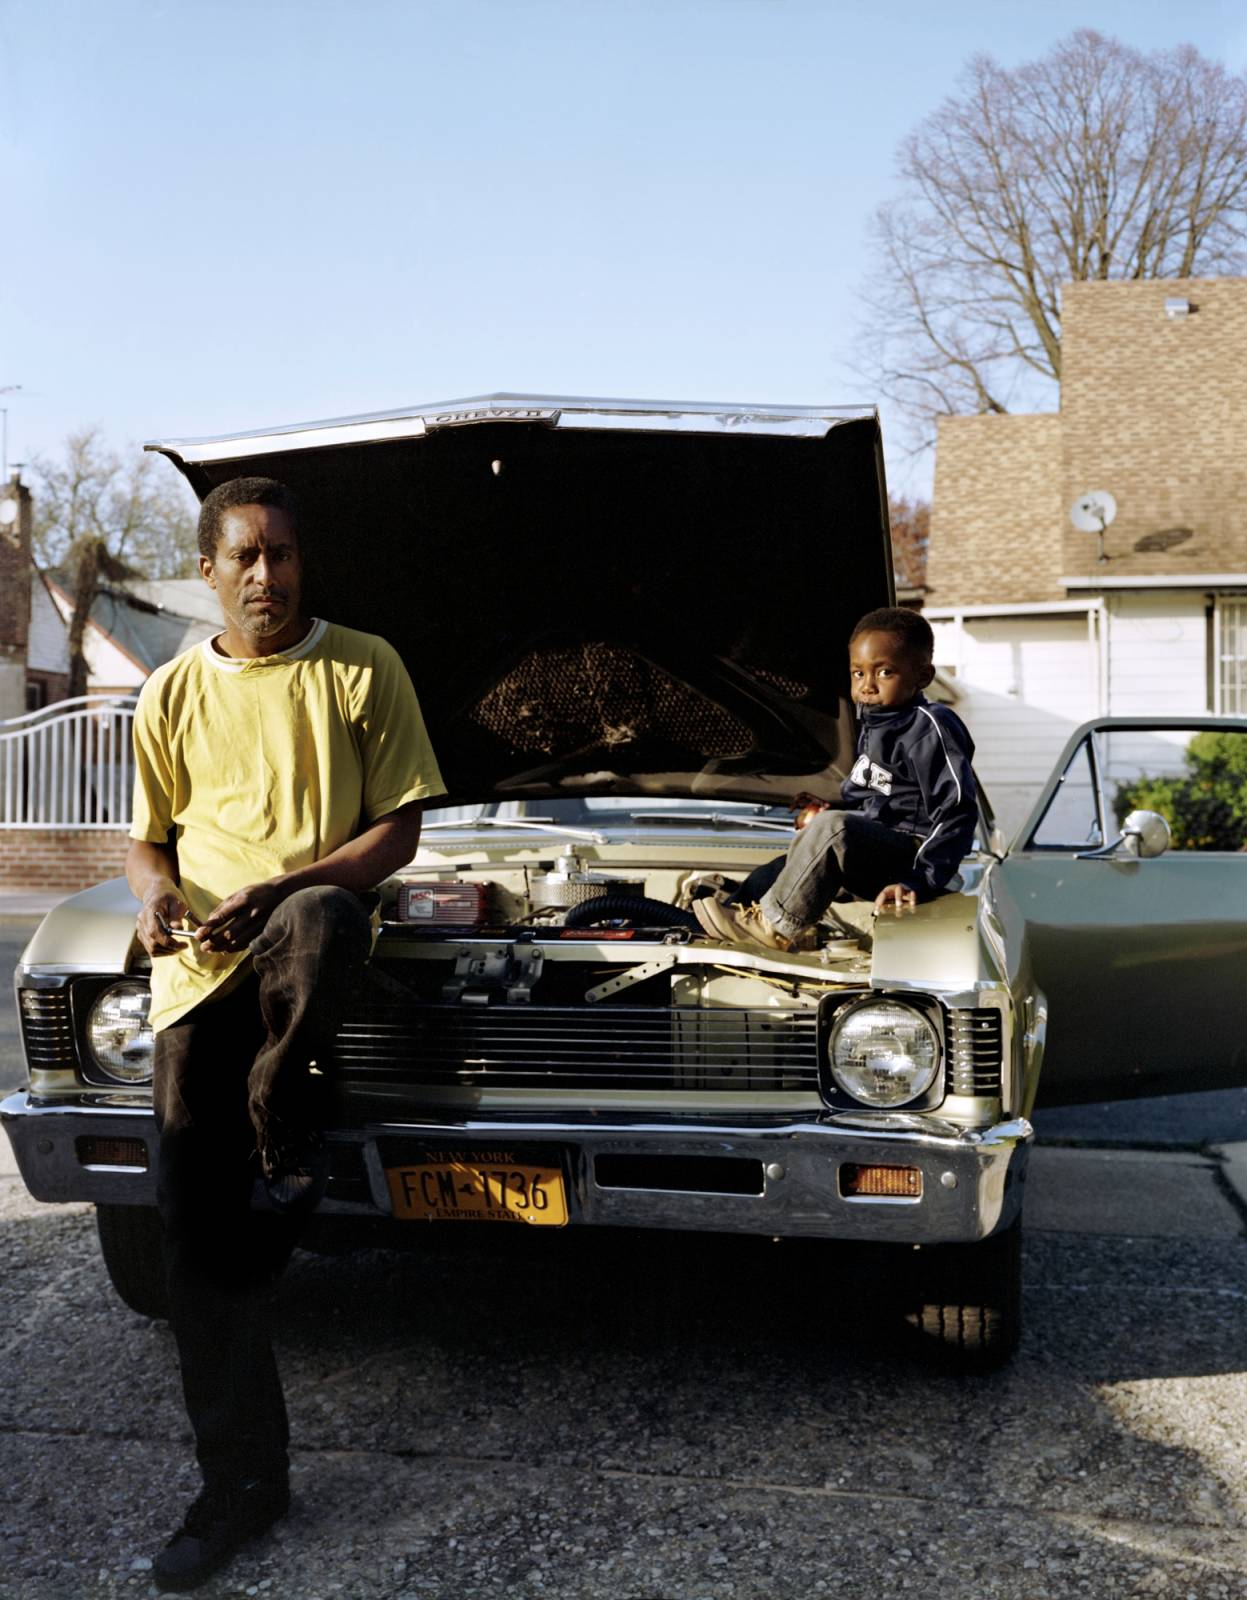 Photo by Elias Williams from his on-going portrait of his neighborhood in Queens, NYC. Greg with his son Jaivyn, spending the afternoon working on their Chevy Nova. Greg, who lived in St. Albans his whole life, witnessed many of his neighbors lose their homes throughout the community's housing crisis. St. Albans, Queens.